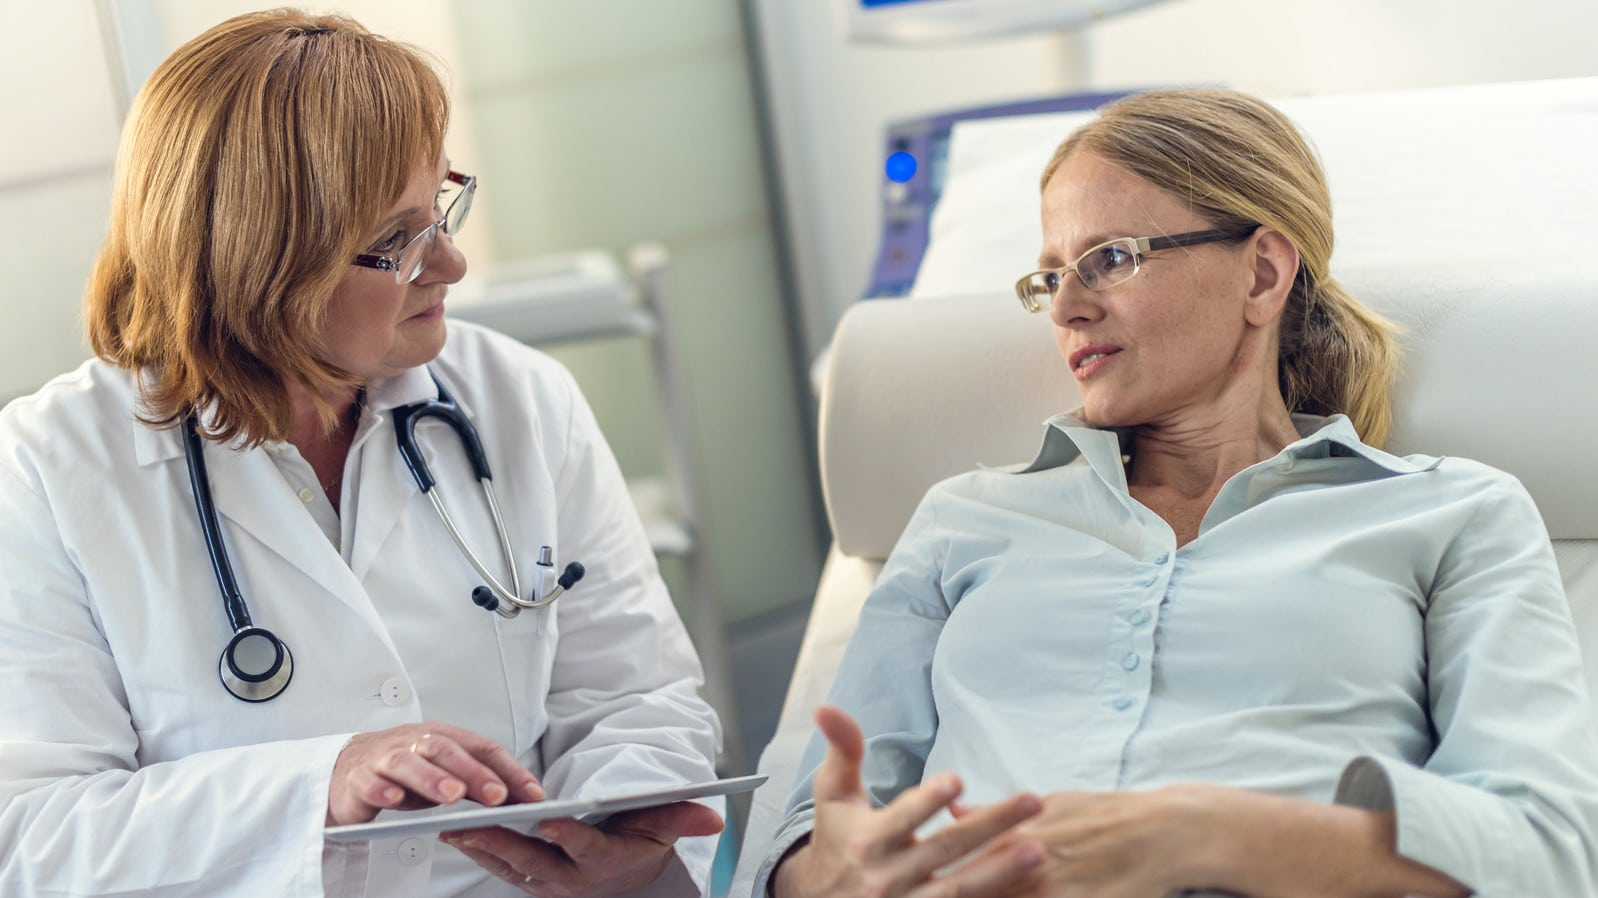 Female Doctor Meeting With Female Patient Stock Photo